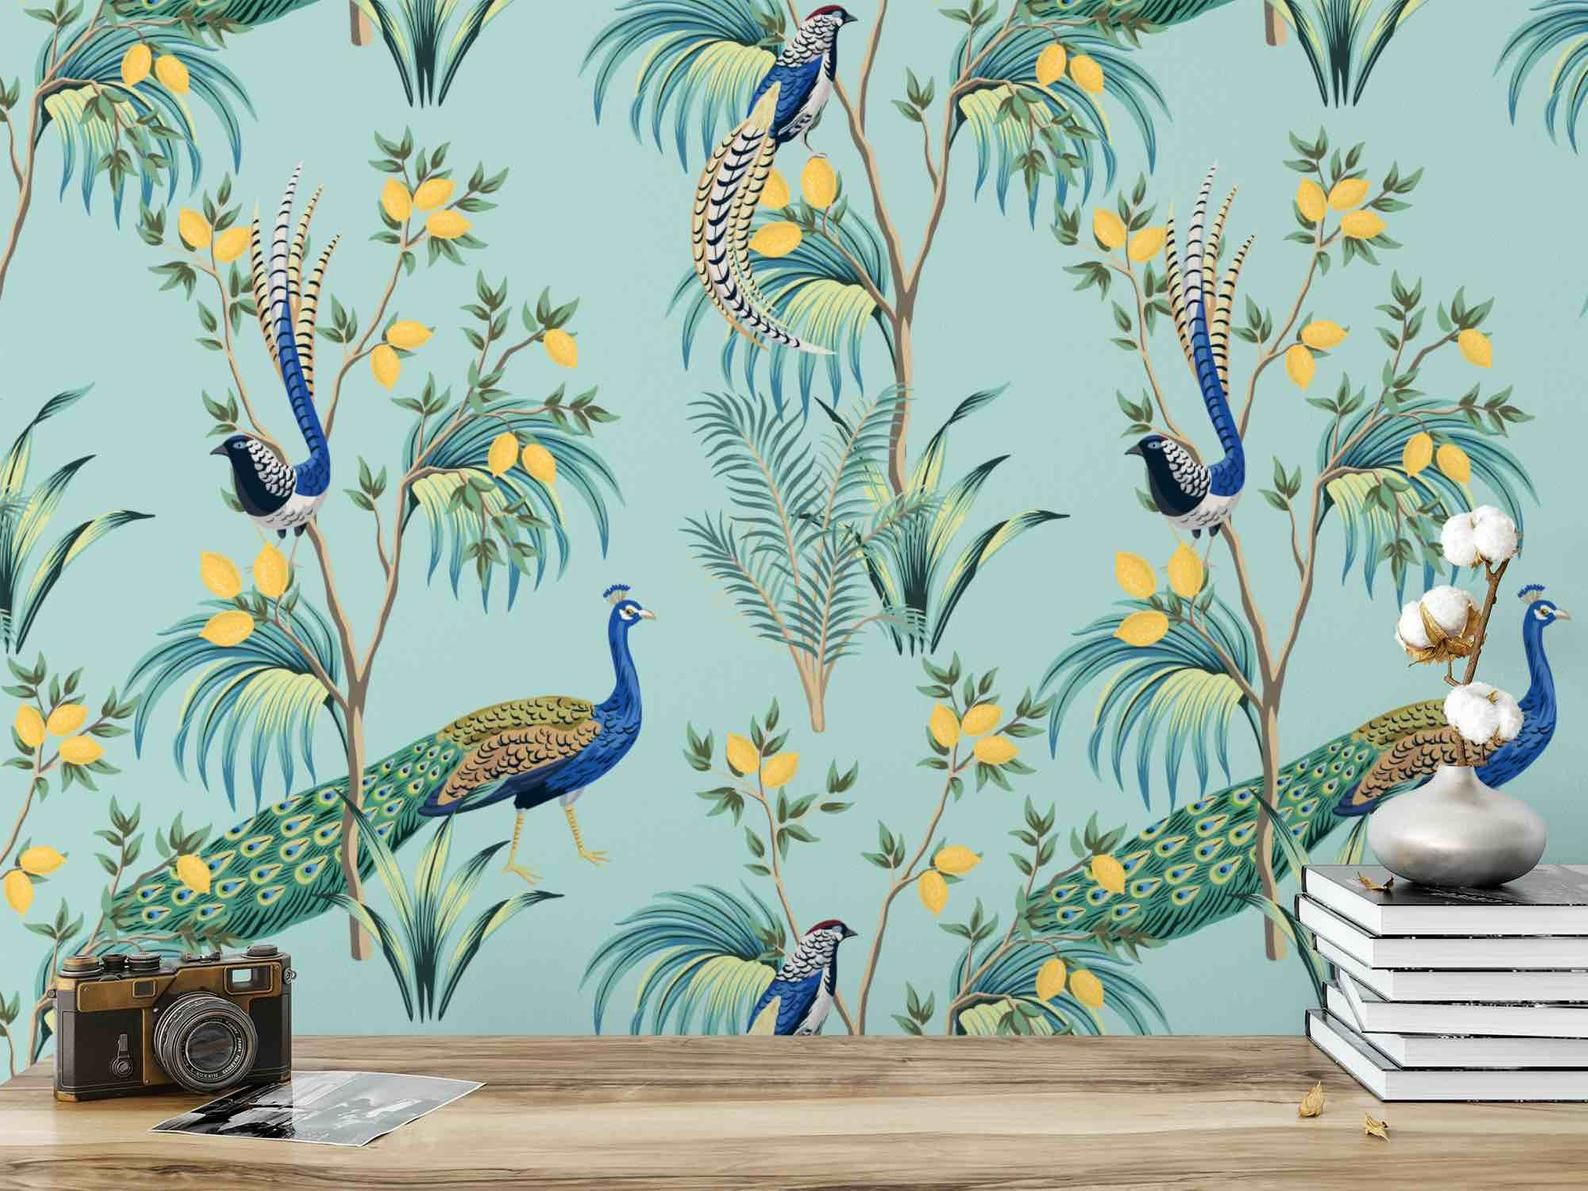 Chinoiserie Wallpaper Peel And Stick Wallpaper Removable Etsy Chinoiserie Wallpaper Peacock Wallpaper Peel And Stick Wallpaper